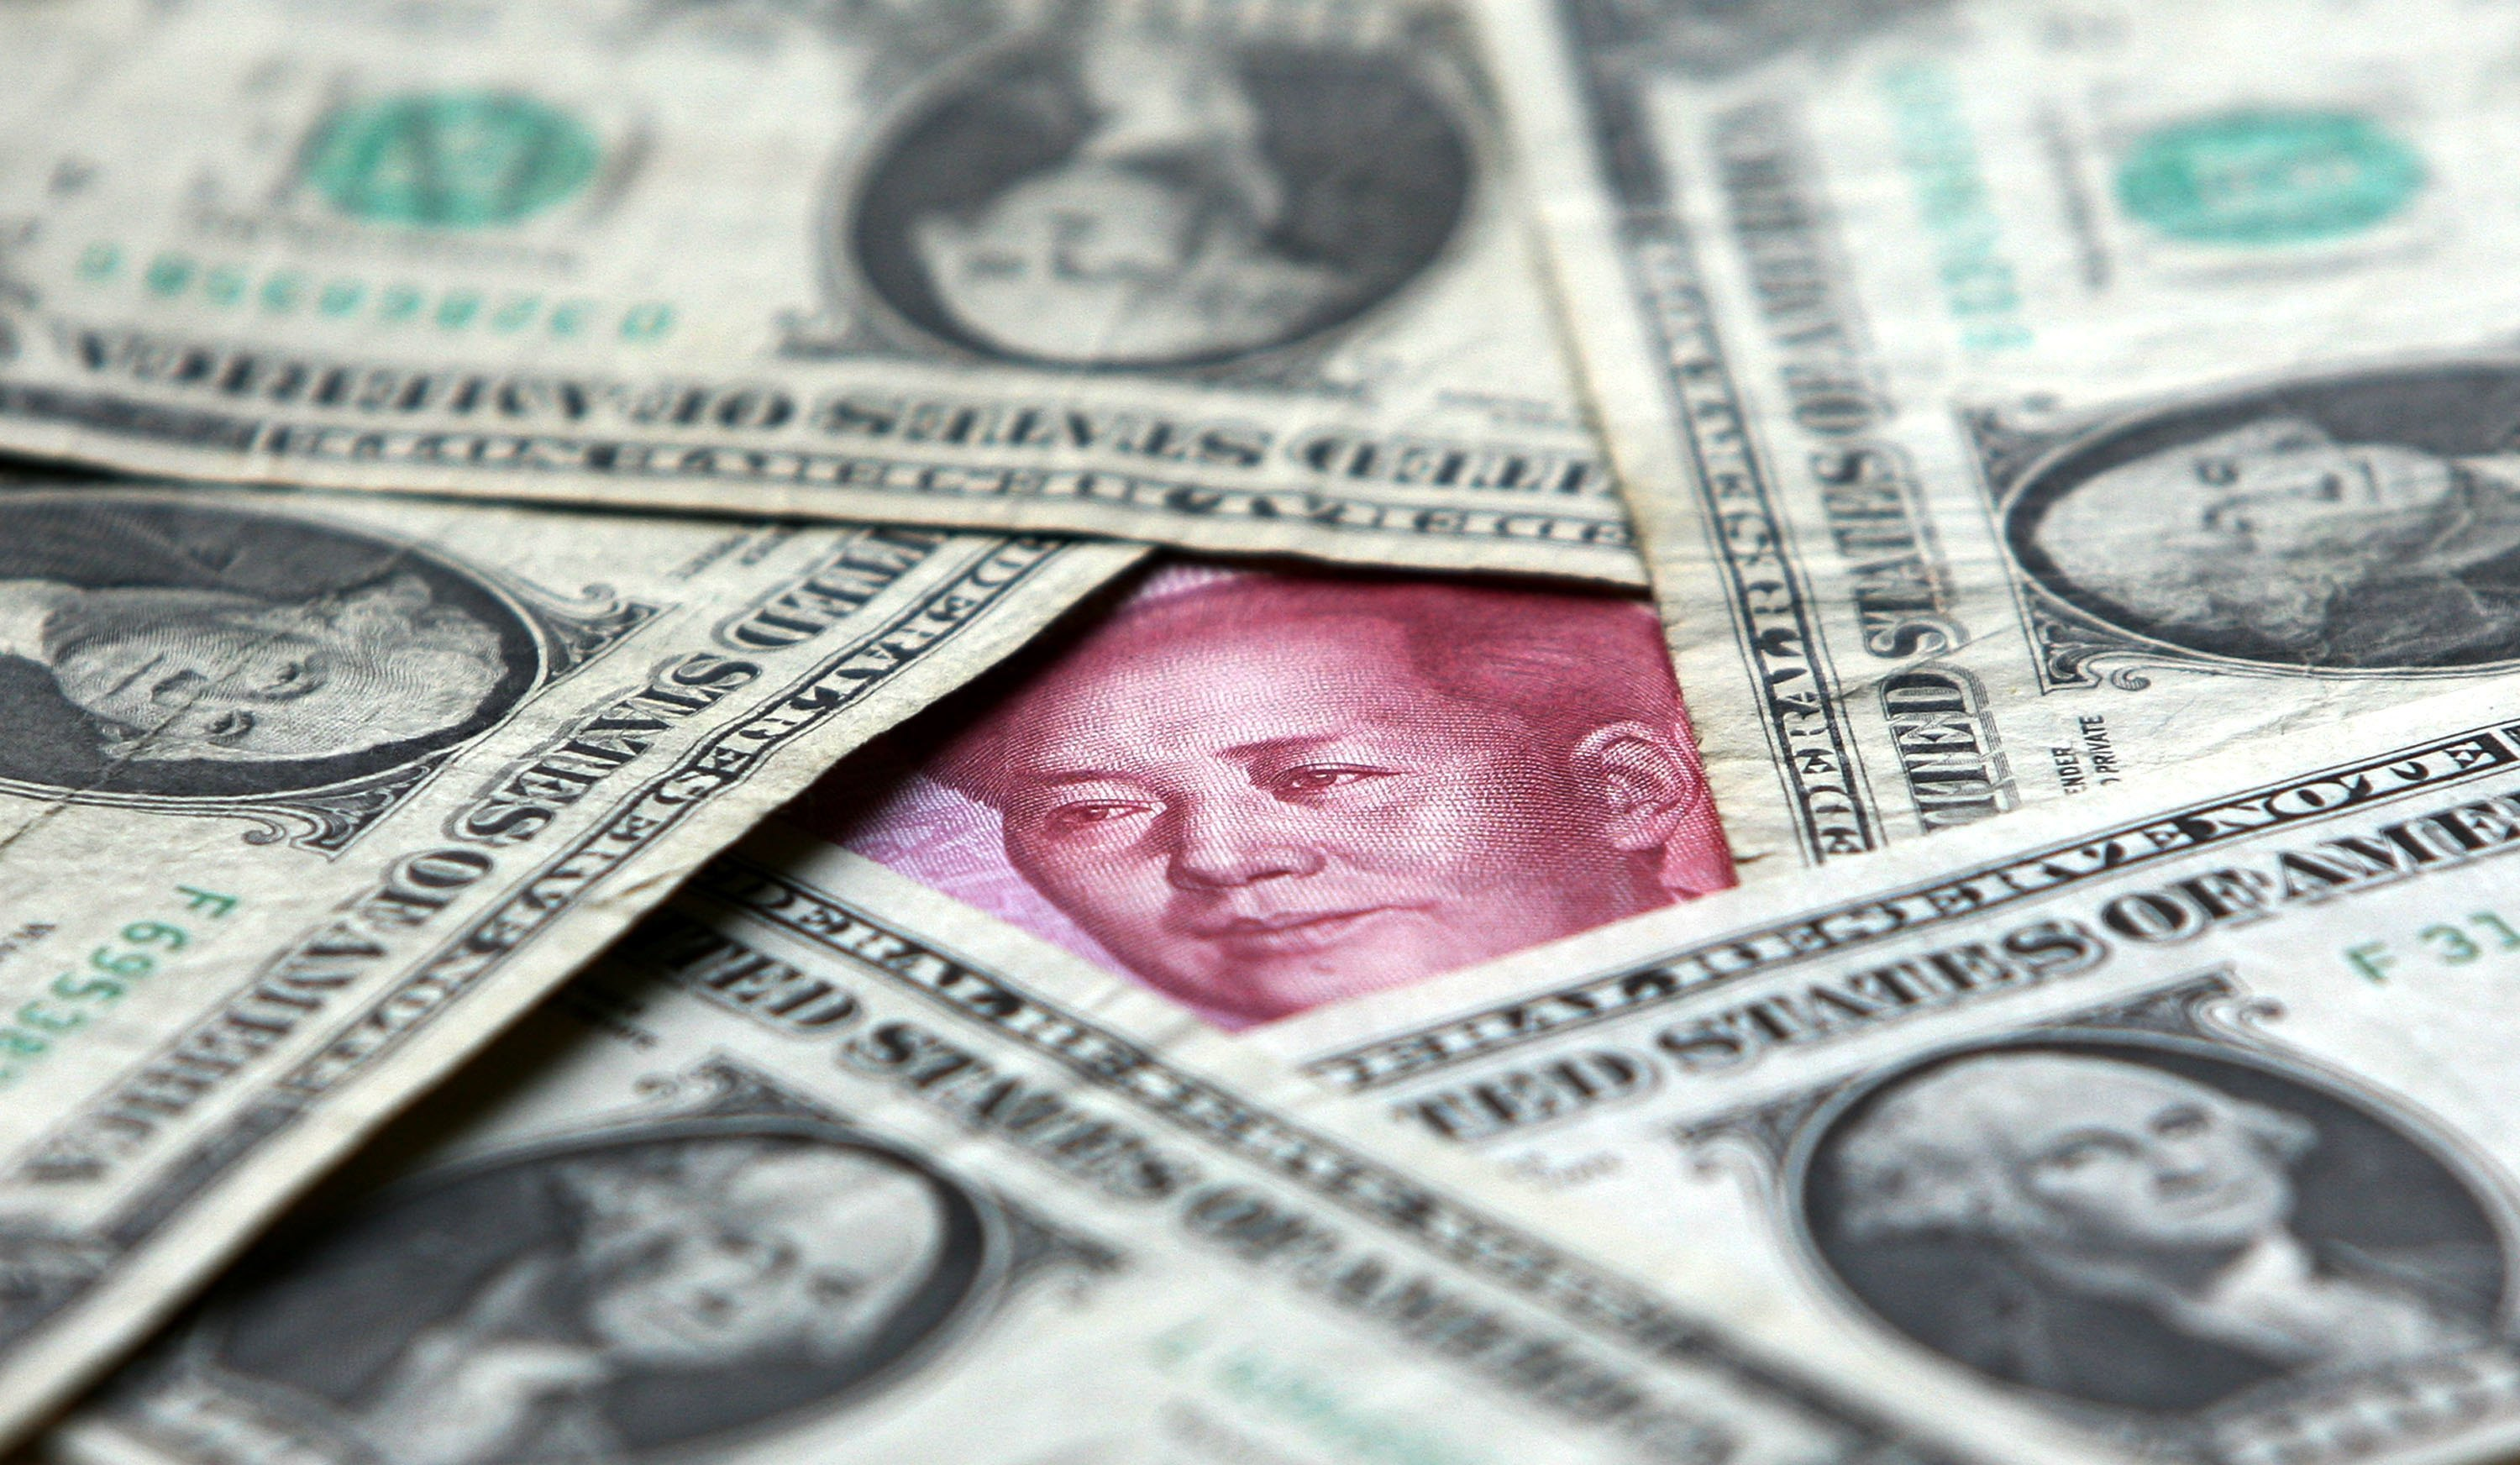 Dollars and yuan notes are seen at a bank on May 15, 2006 in Beijing.